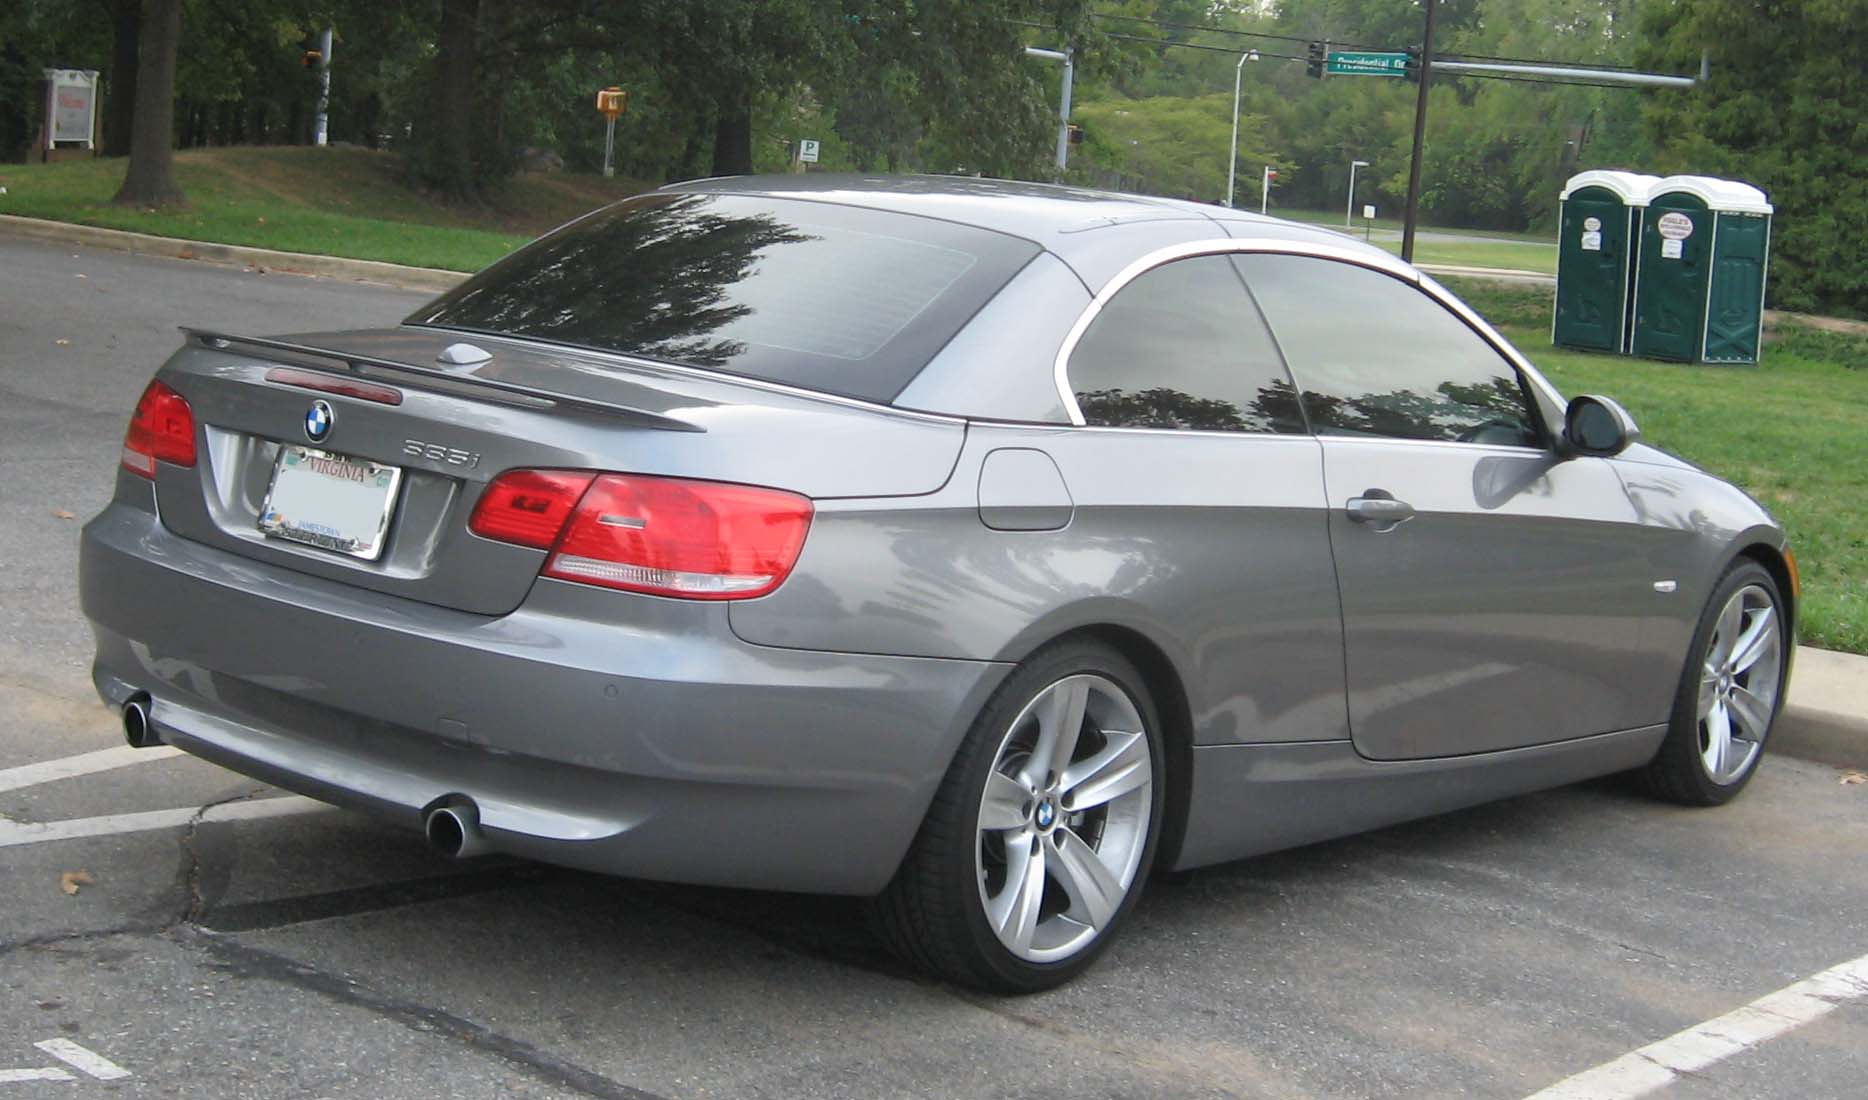 FileBMWiconvertiblerearjpg Wikimedia Commons - Bmw 335i images